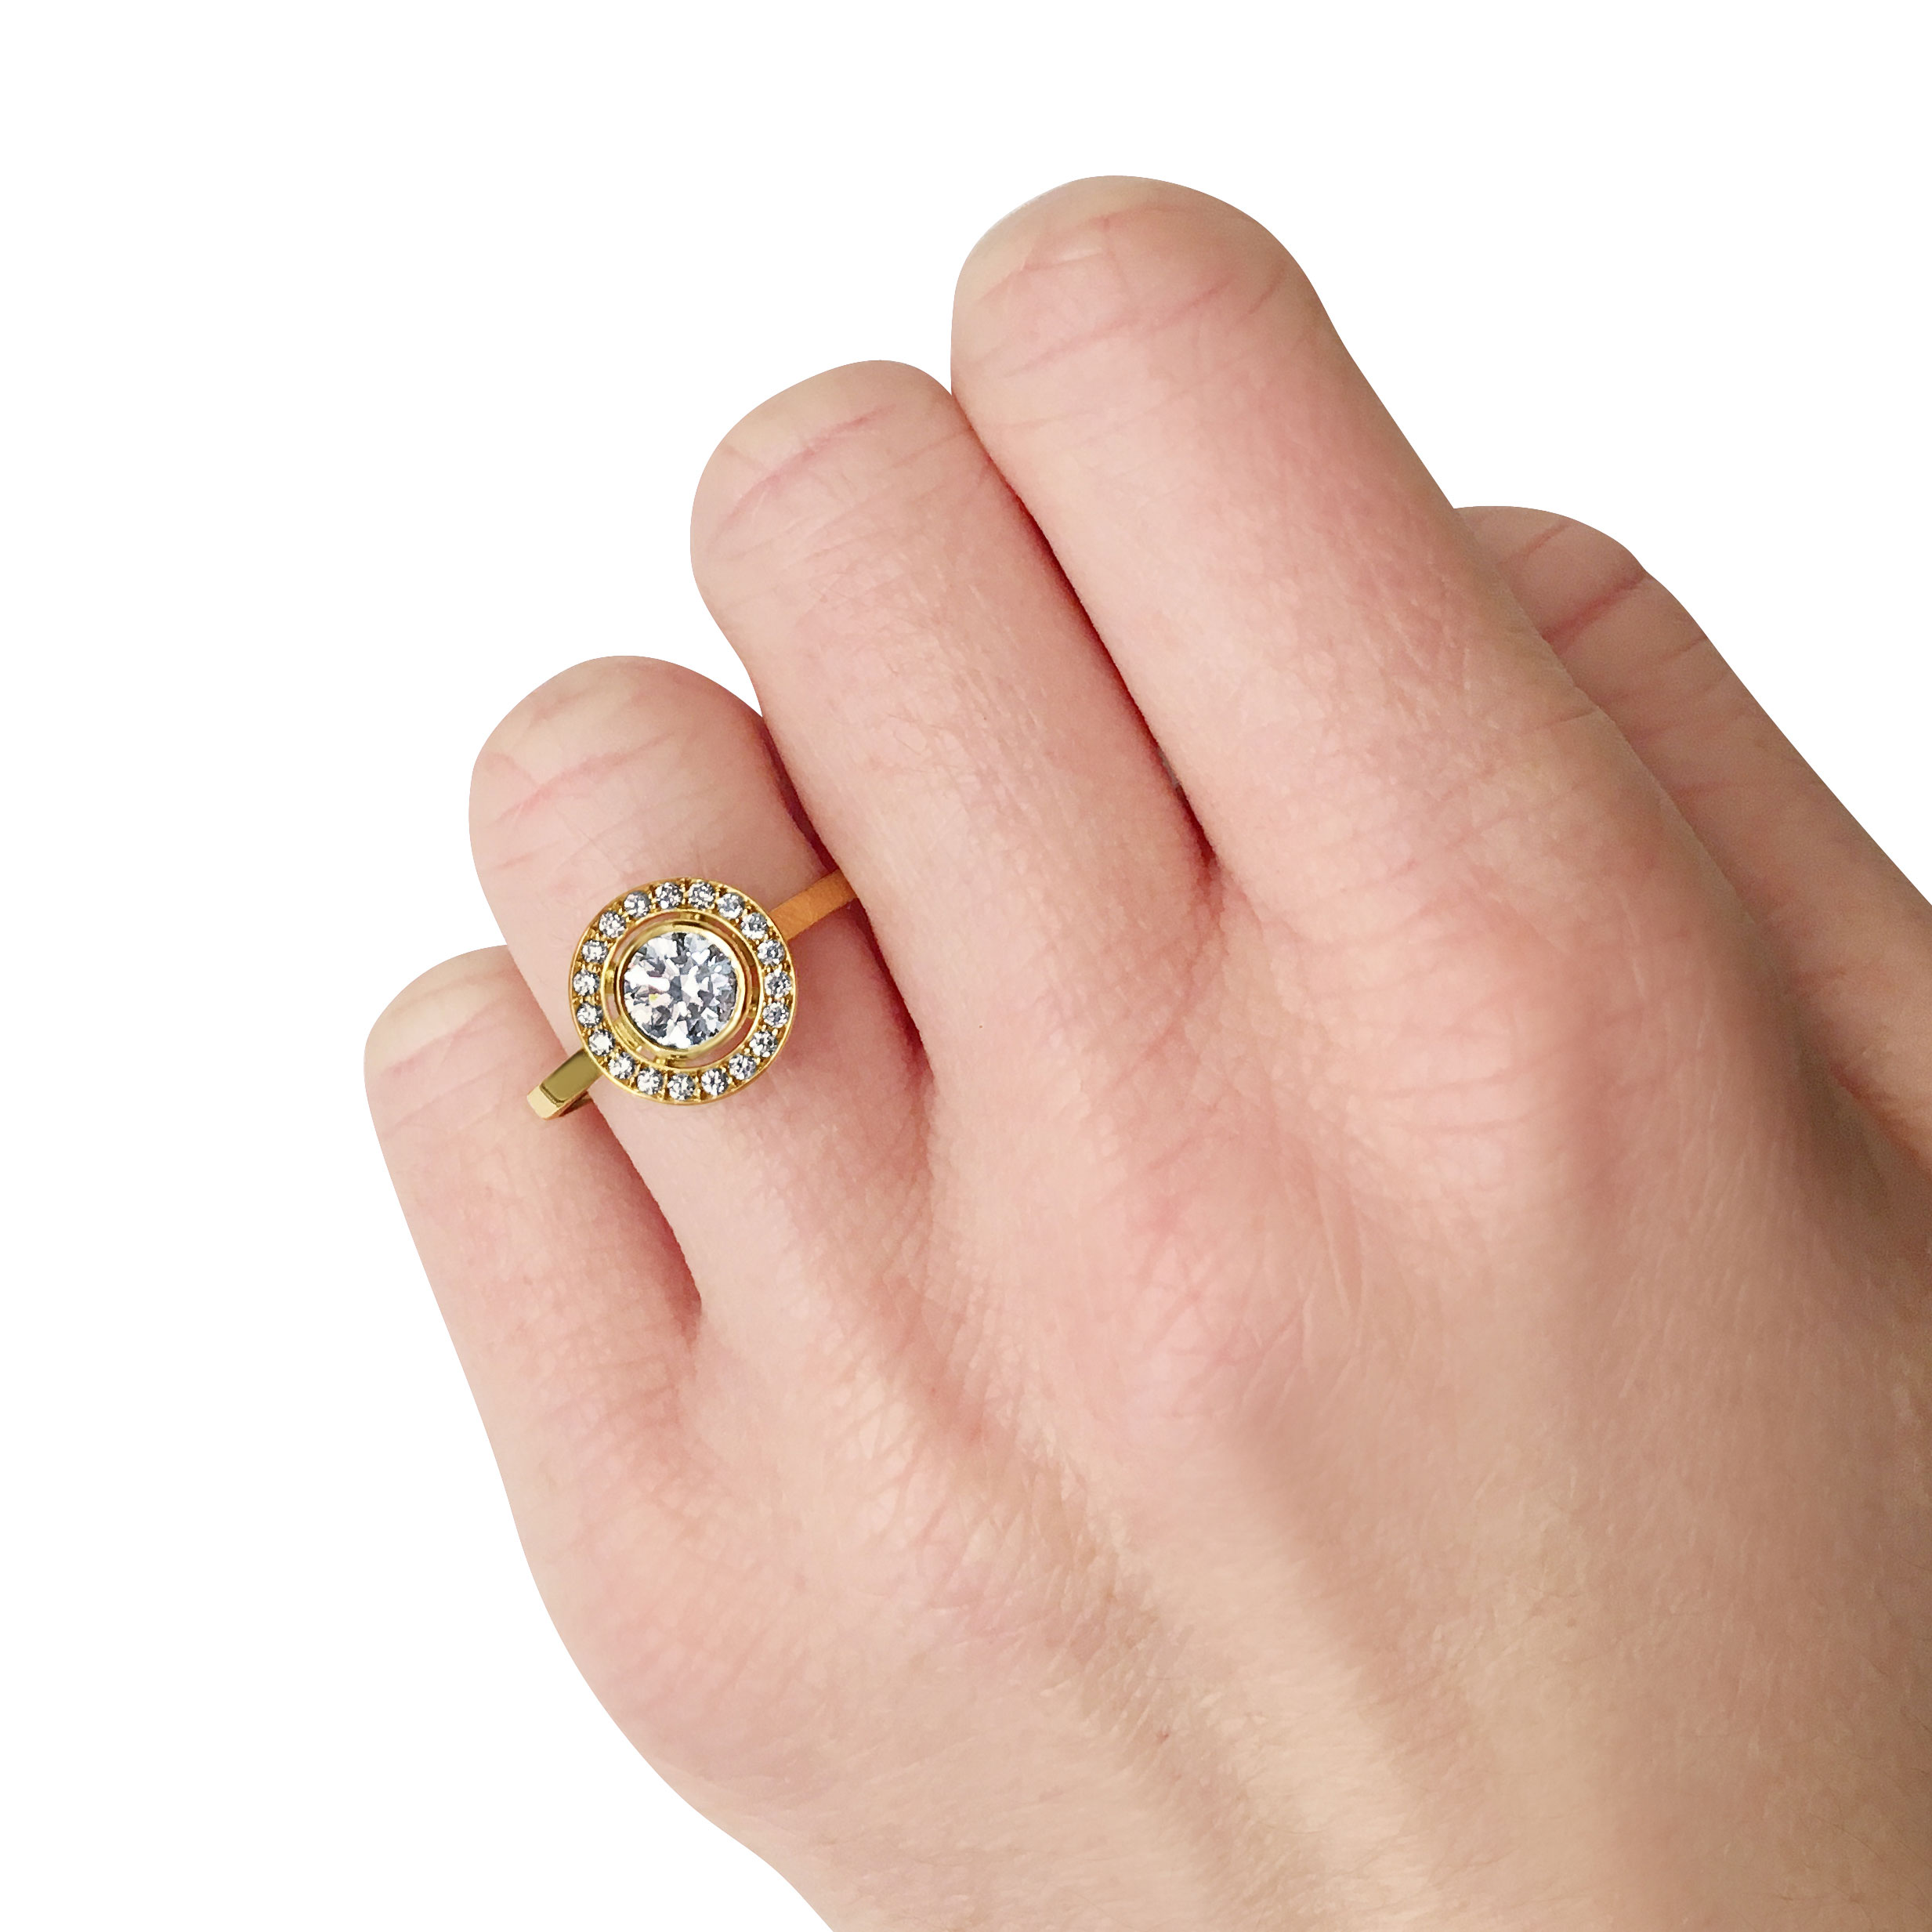 Round-cut diamond with diamond halo engagement ring, mounted in 18ct yellow gold.